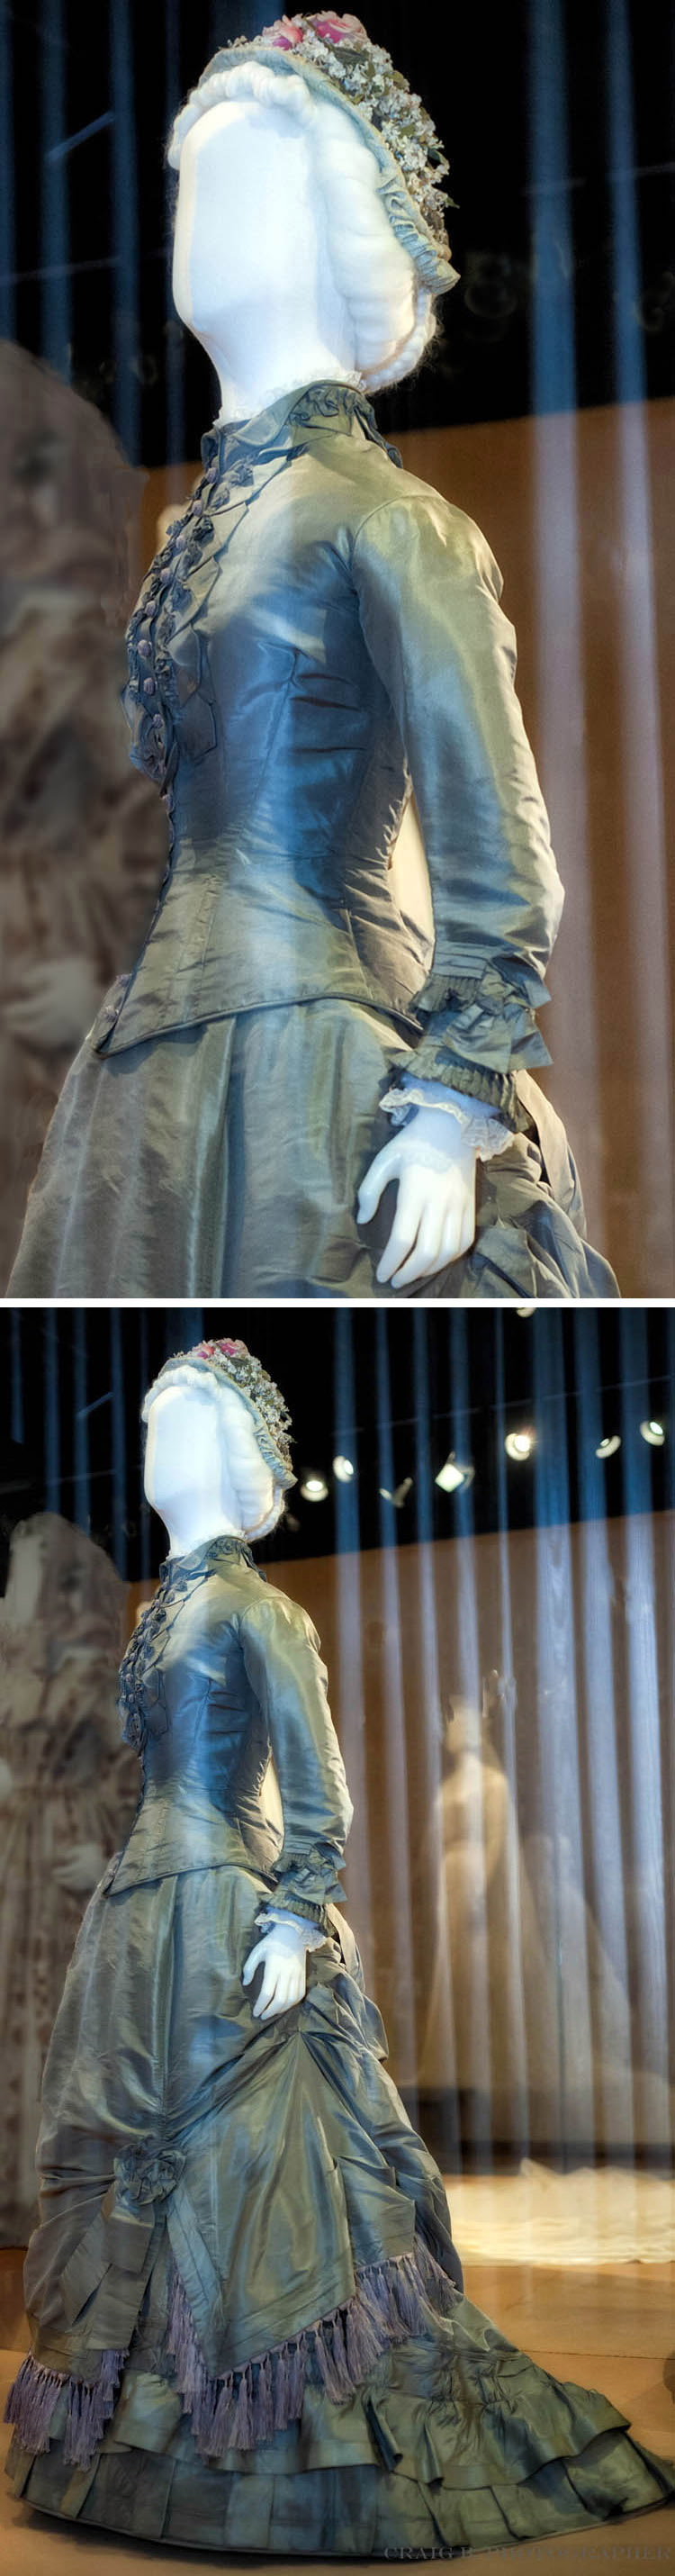 1870s wedding dress. Gray-green silk taffeta with silk fringe. Western Reserve Historical Society via Craig Brown, flickr